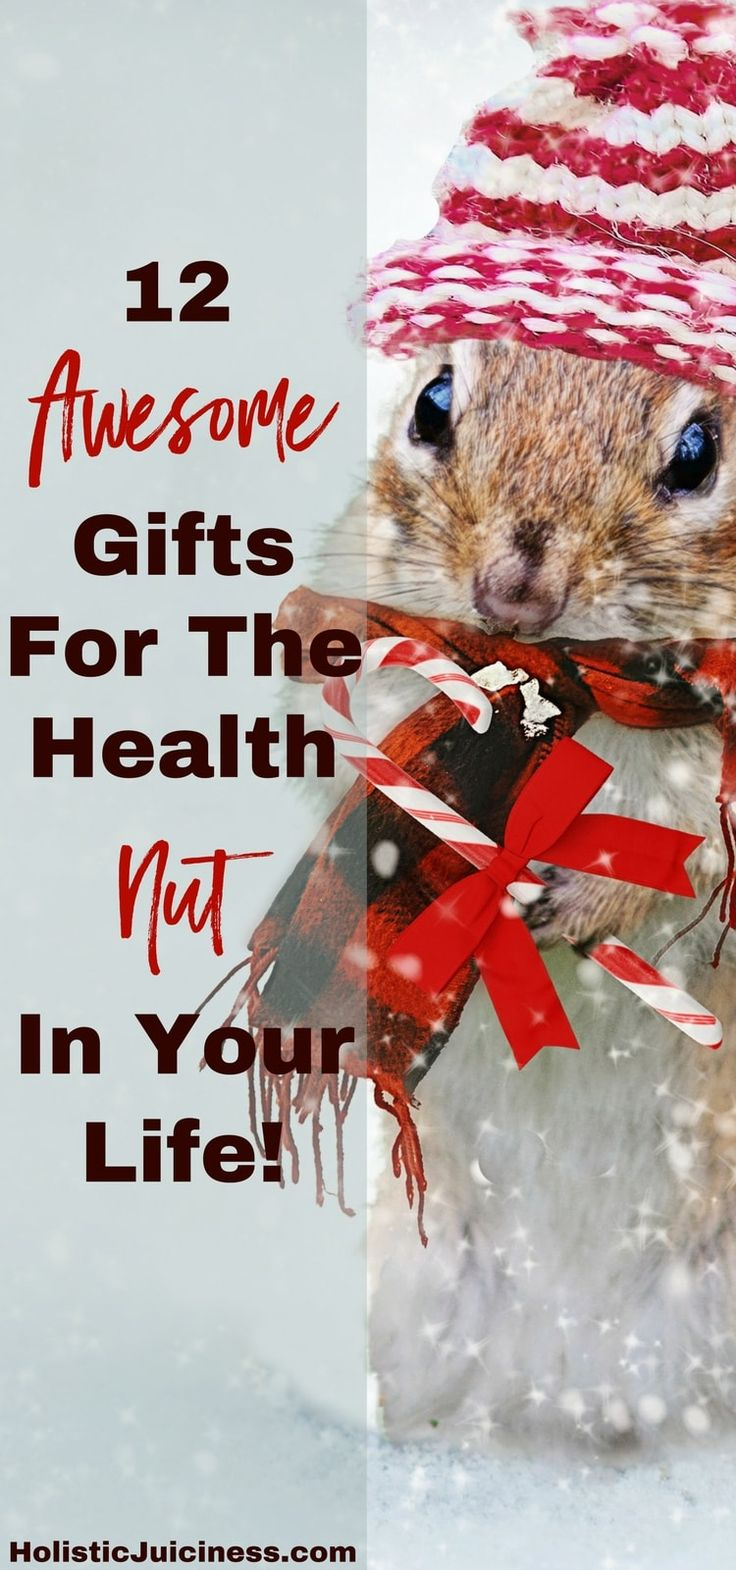 Check out this list of awesome Christmas gift ideas for the health minded man or woman in your life. This 2017 xmas gift guide is full of unique healthy presents to buy that will really wow him or her. Get your mom, dad, son or daughter something they'll really enjoy and use to help them stay healthy all year long! #Christmas #healthychristmas #healthygifts #giftguide #giftguide2017 #christmasgifts #christmasgiftideas #xmas #health #wellness #giftsforher #giftsforhim #giftsformom…